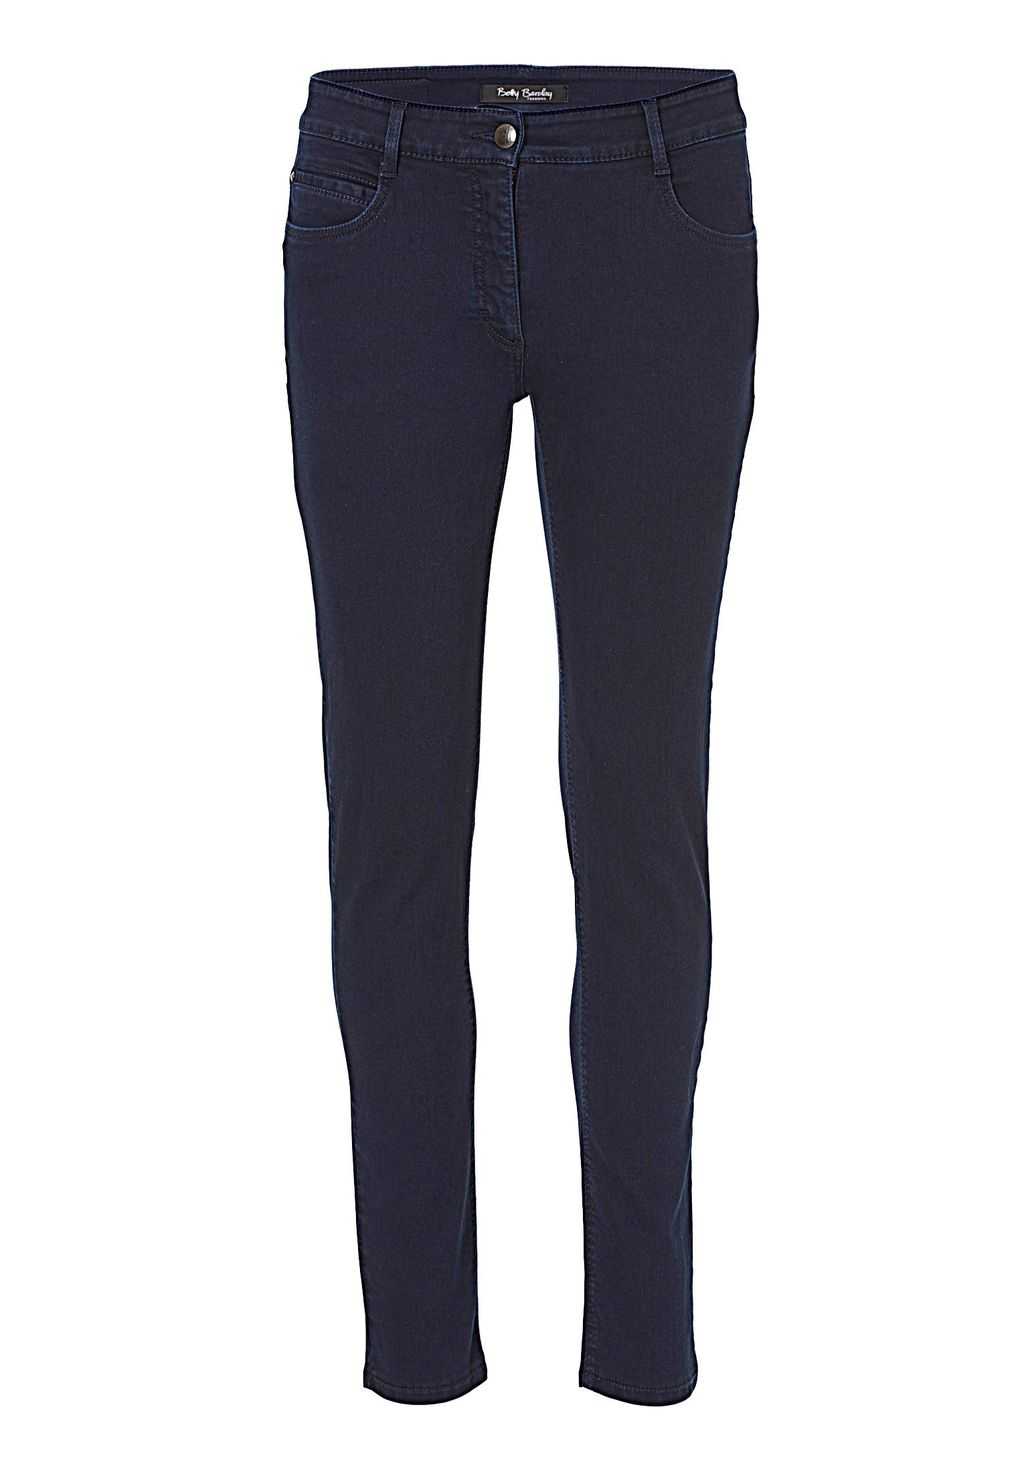 Perfect Slim Five Pocket Jeans, Blue - length: standard; pattern: plain; pocket detail: traditional 5 pocket; style: slim leg; waist: mid/regular rise; predominant colour: navy; occasions: casual; fibres: cotton - stretch; jeans detail: dark wash; texture group: denim; pattern type: fabric; season: s/s 2016; wardrobe: basic